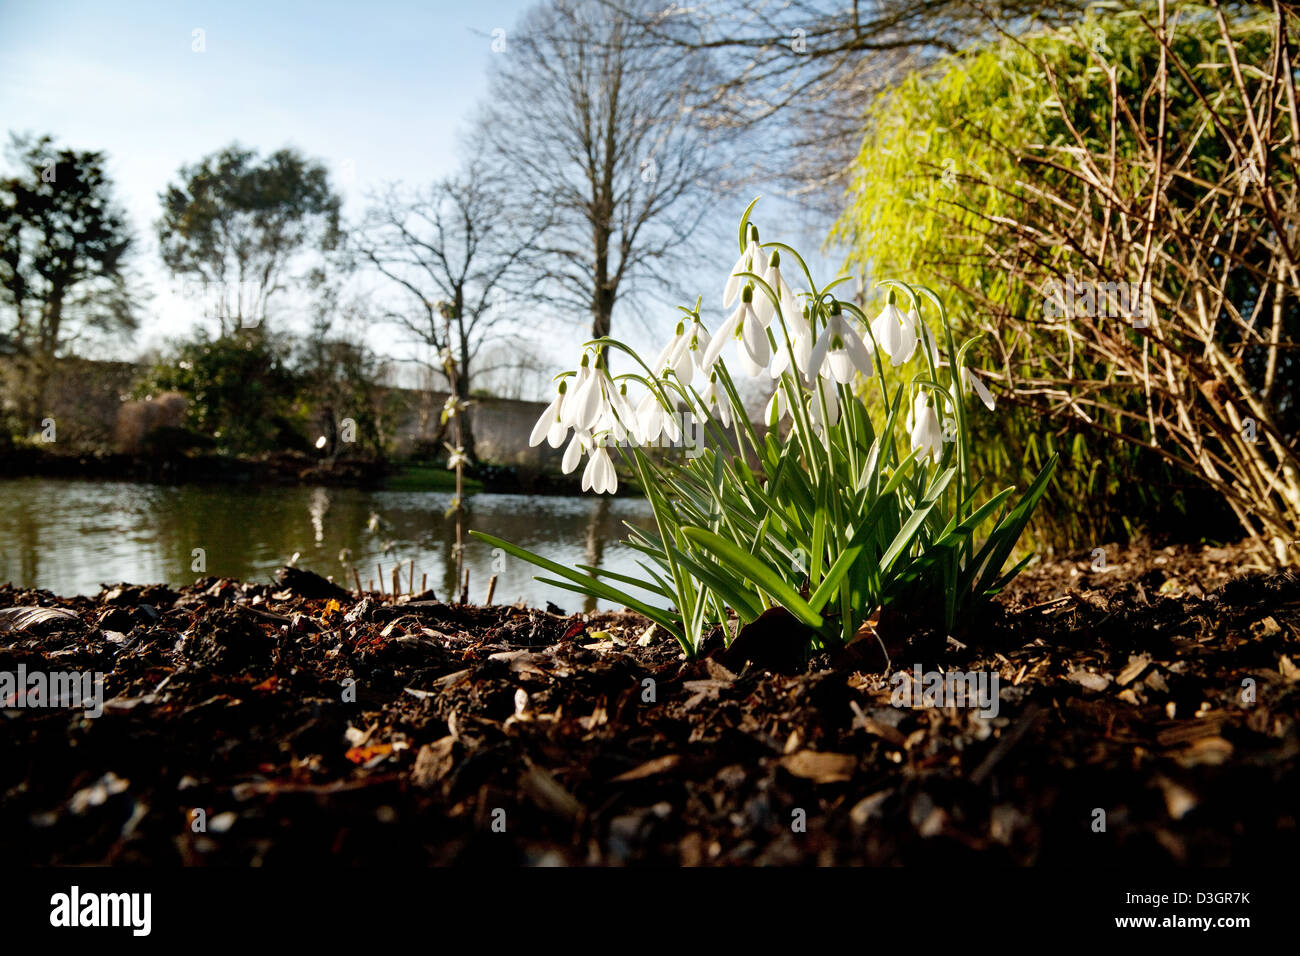 Snowdrops in flower - flowering by water in Spring, February, UK, Chippenham Park House, Cambridgeshire - Stock Image